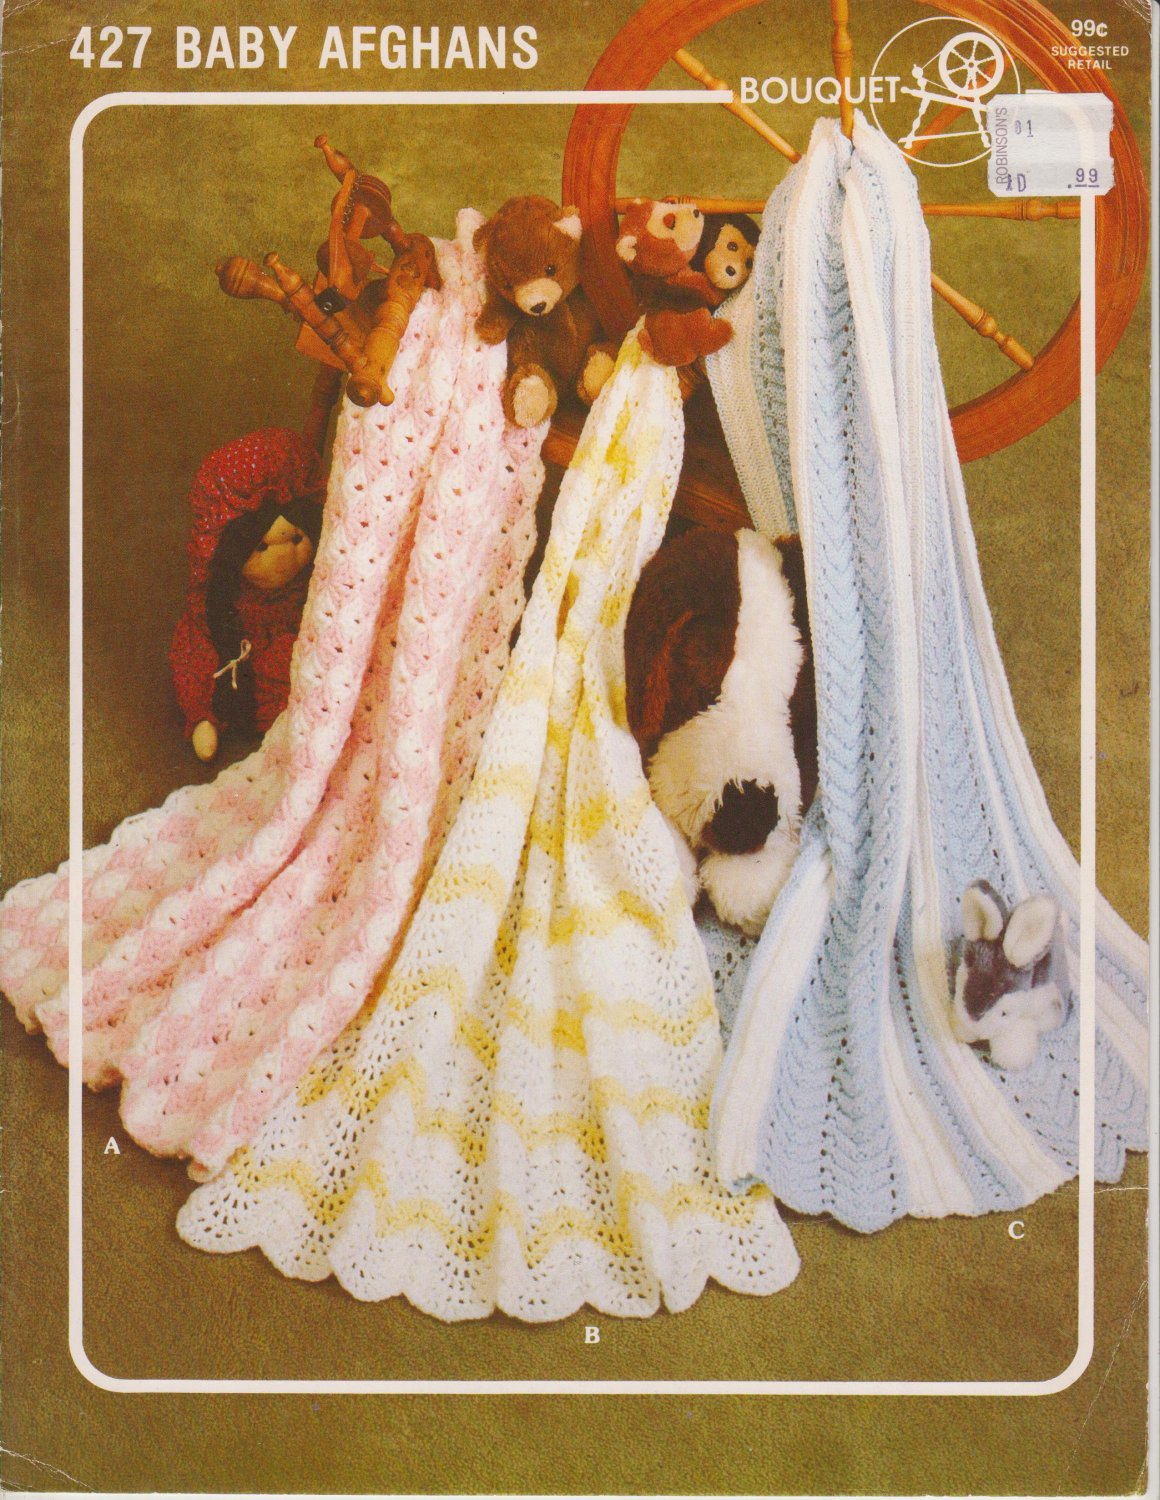 Bouquet Crochet/Knit Pattern #427 to Crochet 2 Afghans and Knit 1 Afghan